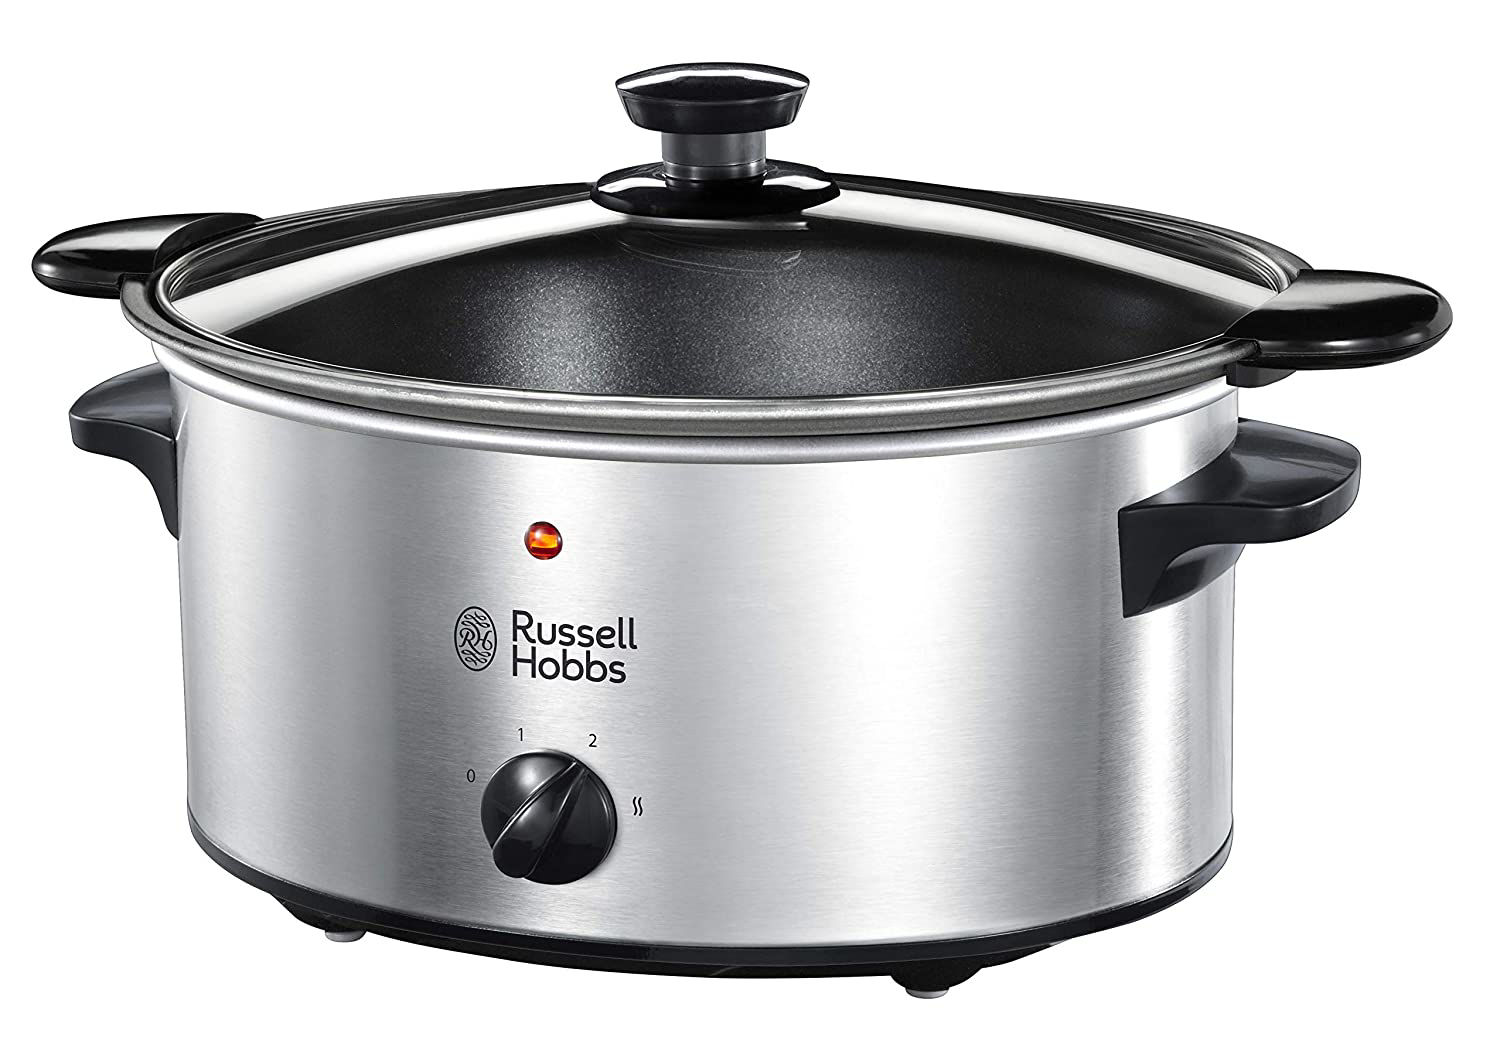 Picture of Russell Hobbs 22740-56 Slow Cooker @ Home, Crock Pot, Electric Slow Cooker, 3 Temperature Settings, 3.5l, Stainless Steel / Black